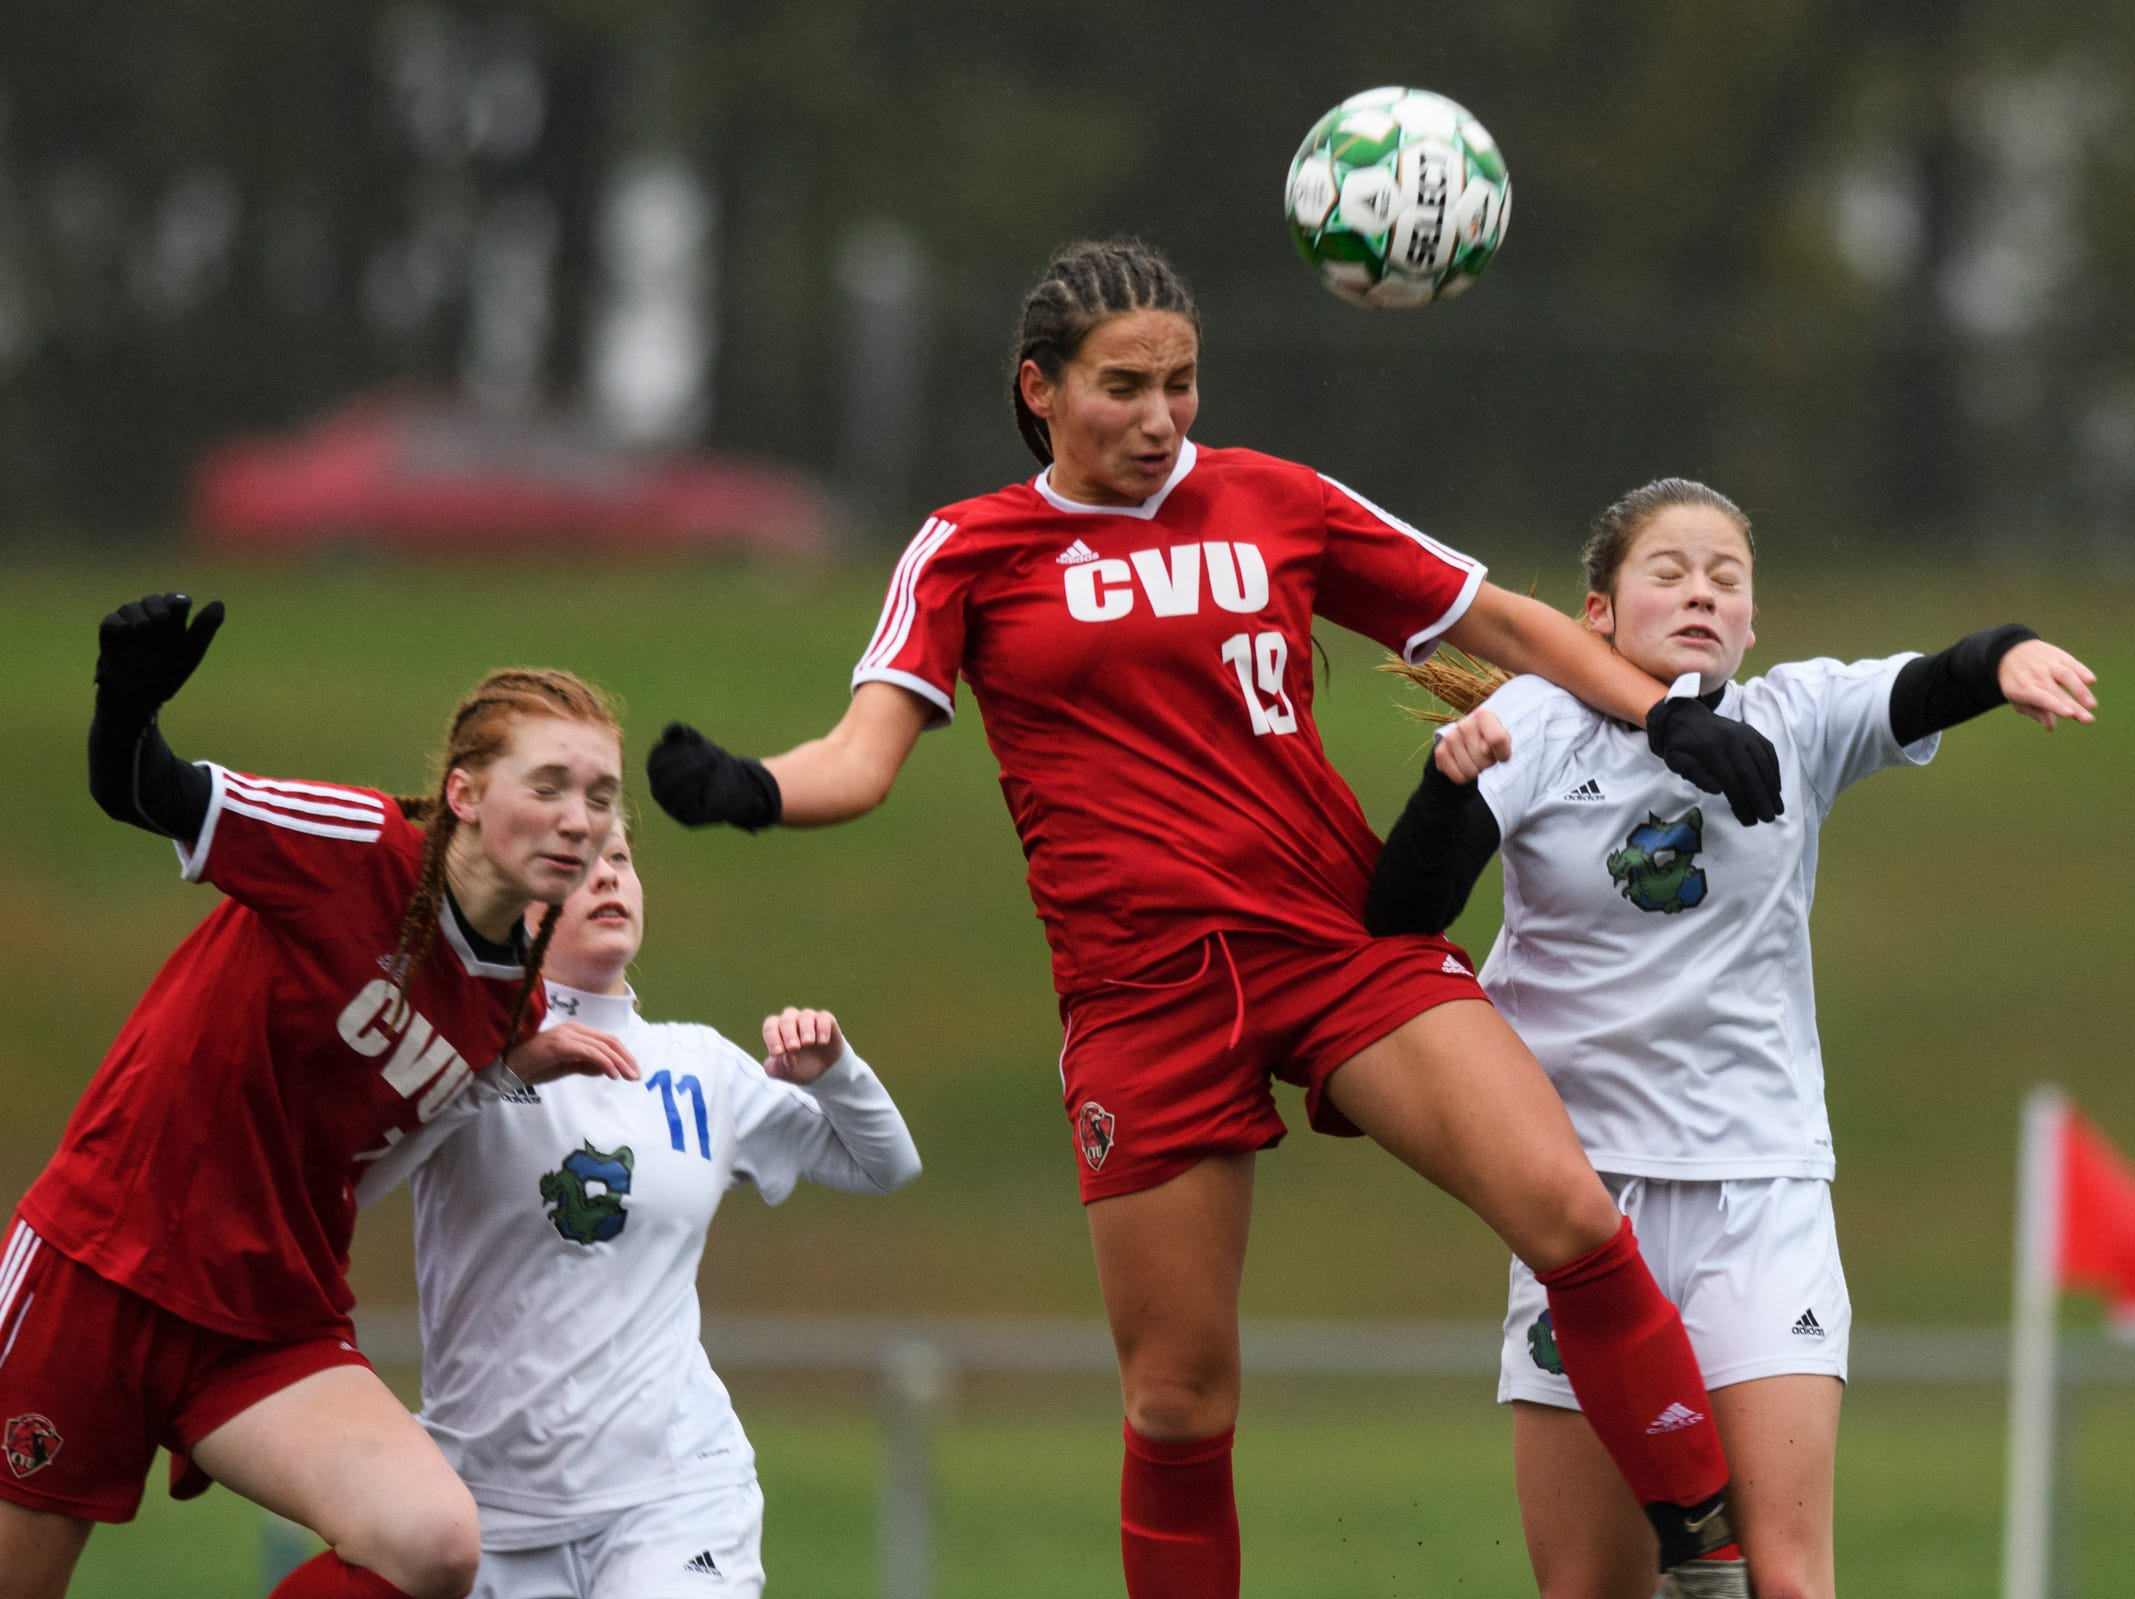 CVU's Sara Kelley (19) leaps over Colchester's Madison Finelli (1) to head the ball during the division I girls soccer championship game between the Colchester Lakers and the Champlain Valley Union Redhawks at Buck Hard Field on Saturday morning November 3, 2018 in Burlington.